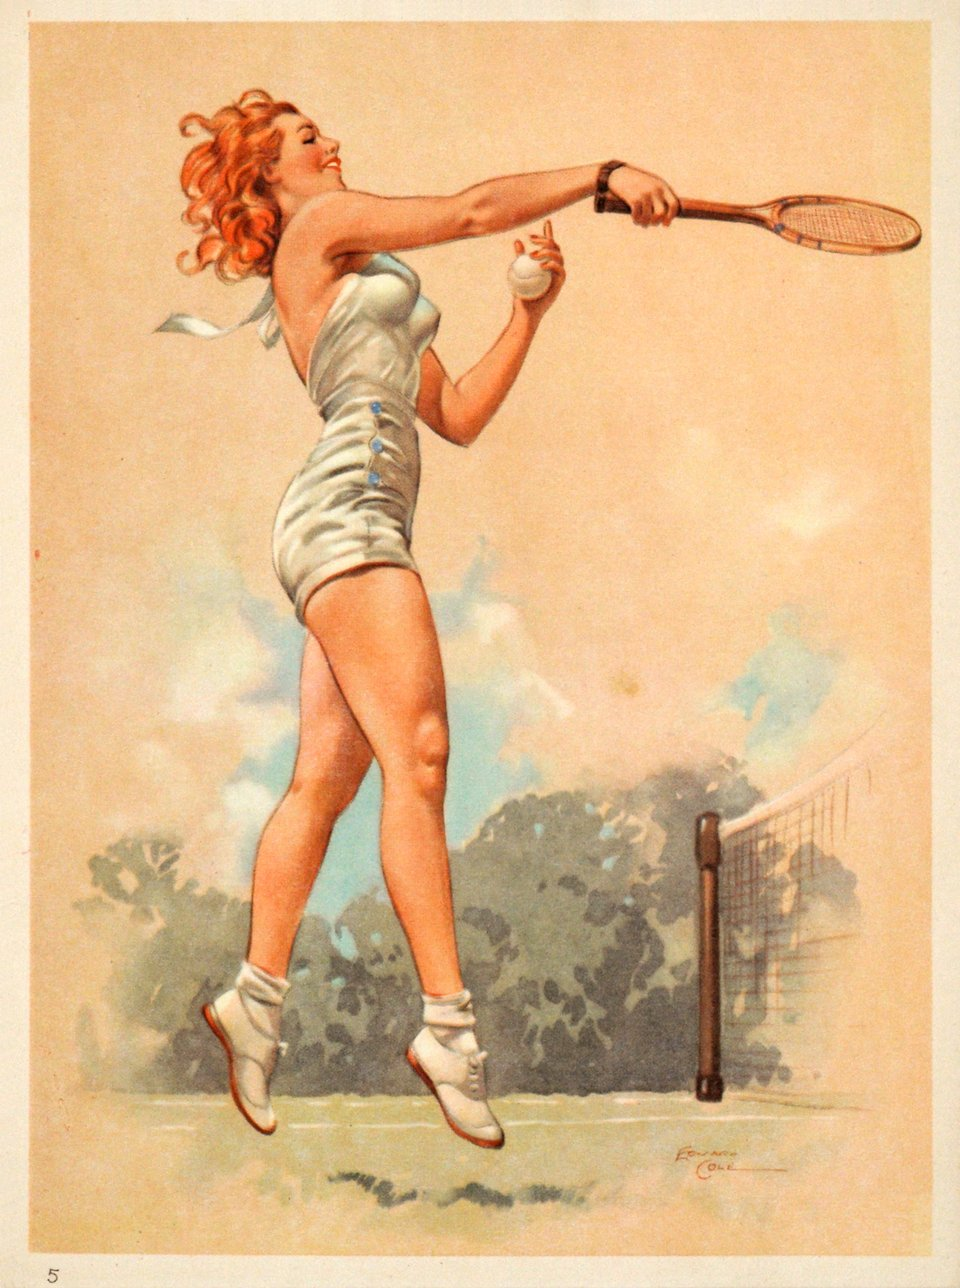 Pin up, tennis. – Vintage poster – Edward COLE – 1950